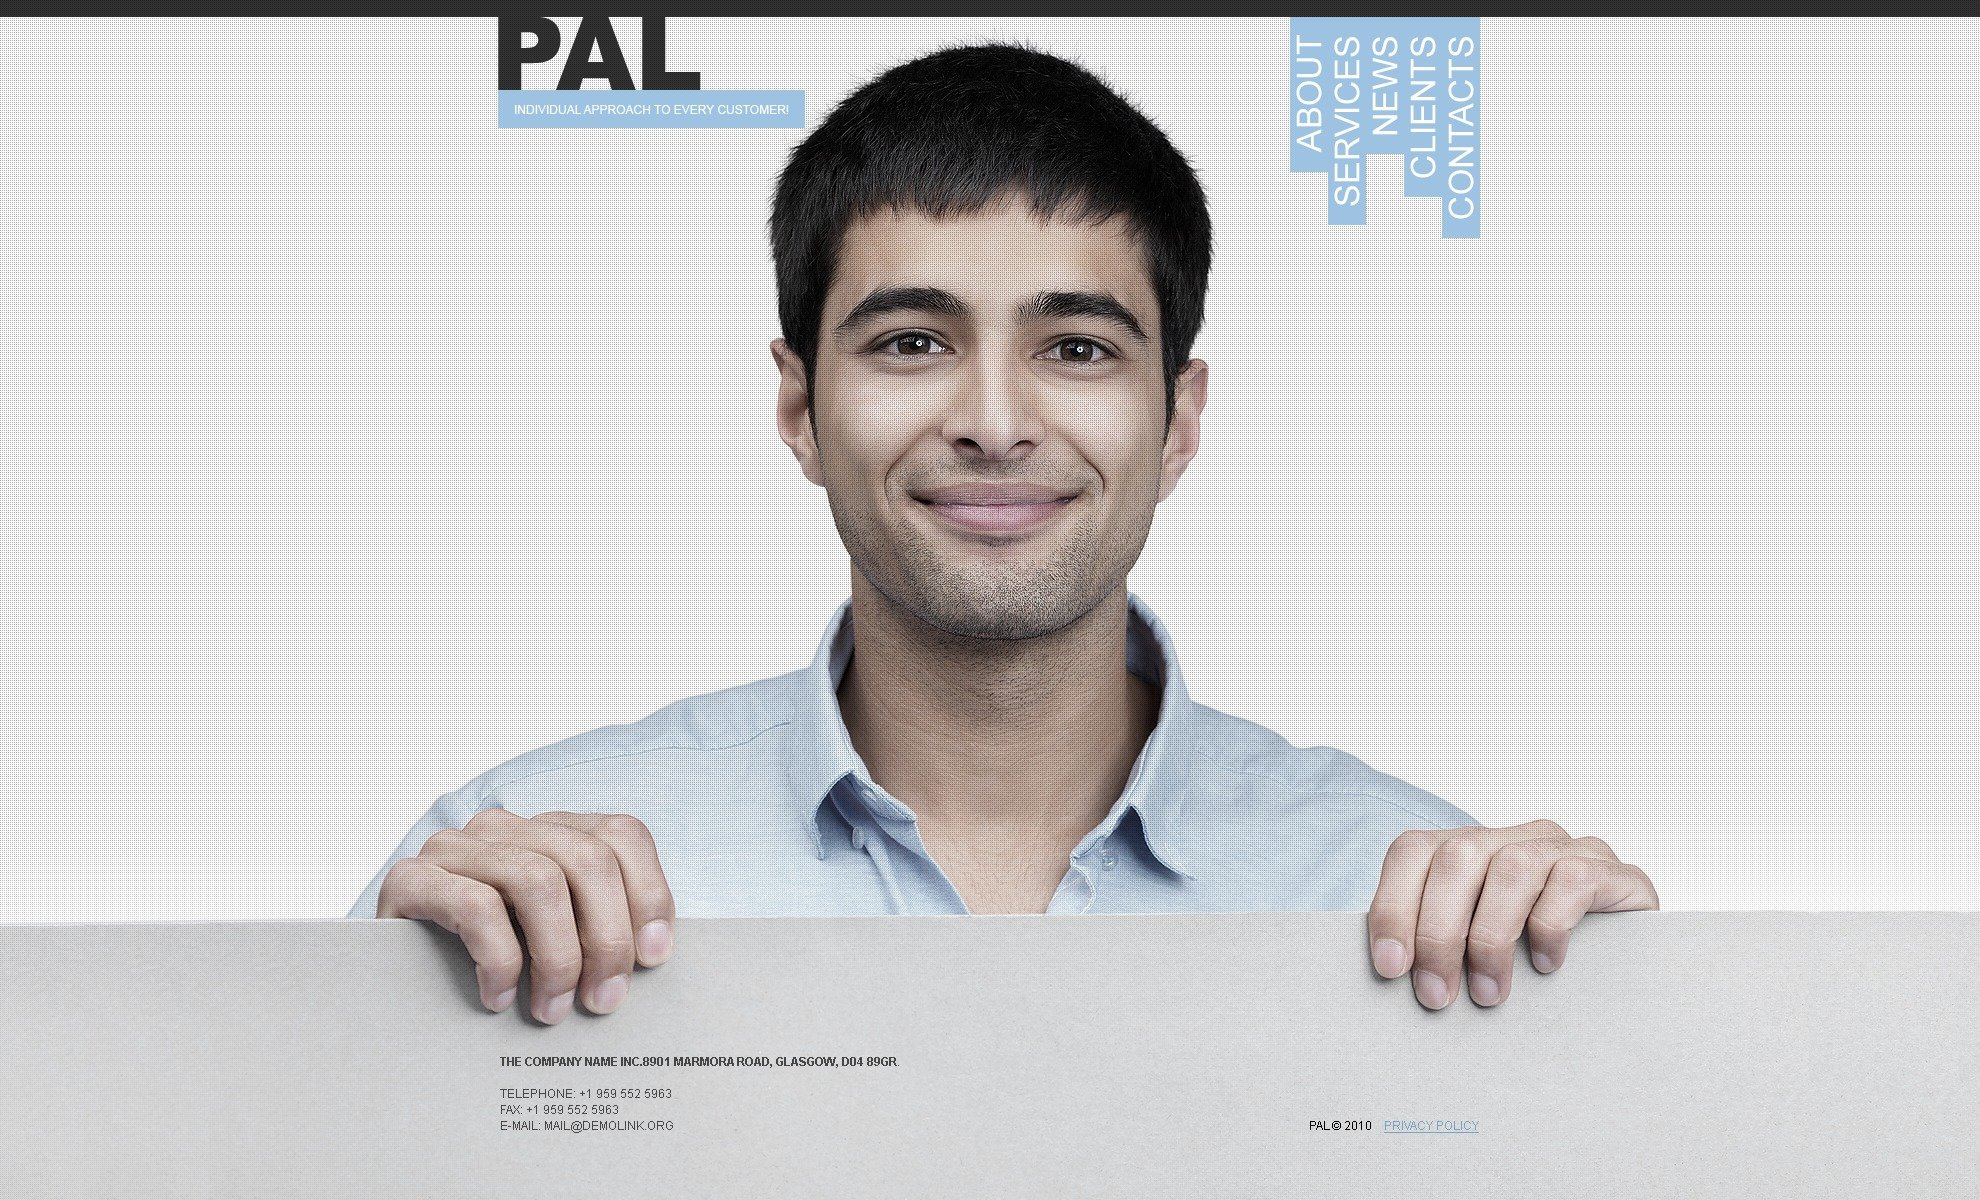 The Pal Business Company PSD Design 54201, one of the best PSD templates of its kind (business, wide, jquery), also known as pal business company PSD template, corporate solutions PSD template, innovations PSD template, contacts PSD template, service PSD template, support PSD template, information dealer PSD template, stocks PSD template, team PSD template, success PSD template, money PSD template, marketing PSD template, director PSD template, manager PSD template, analytics PSD template, planning PSD template, limited PSD template, office PSD template, sales and related with pal business company, corporate solutions, innovations, contacts, service, support, information dealer, stocks, team, success, money, marketing, director, manager, analytics, planning, limited, office, sales, etc.